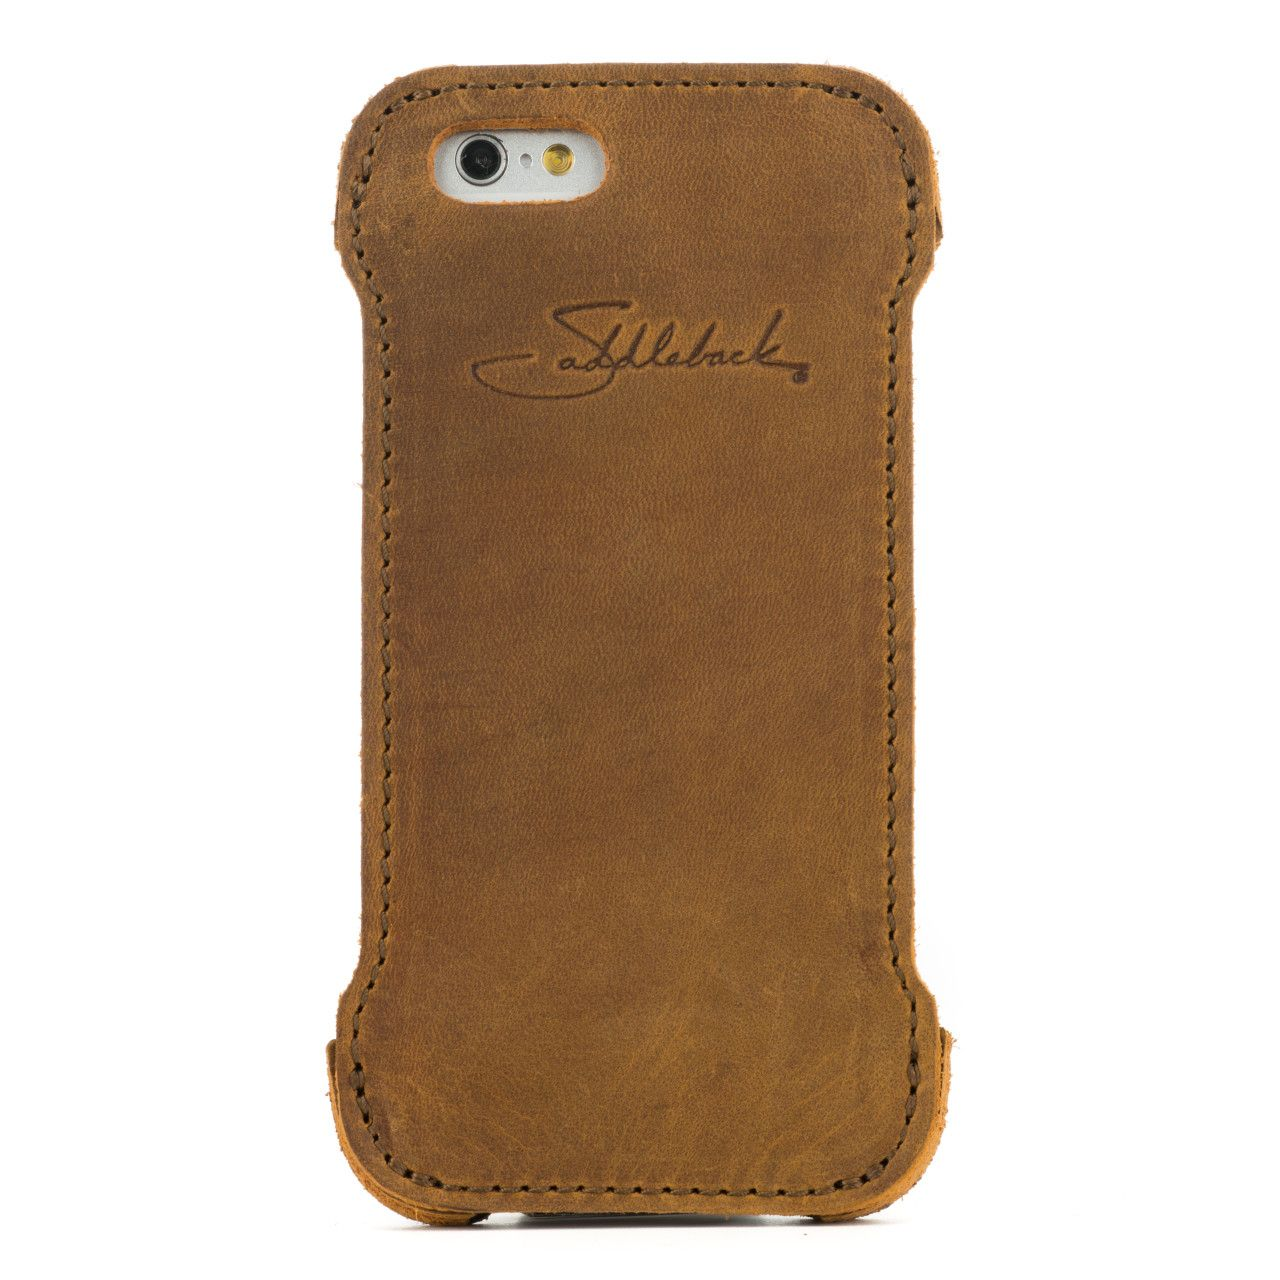 iphone 6 leather case small in tobacco leather